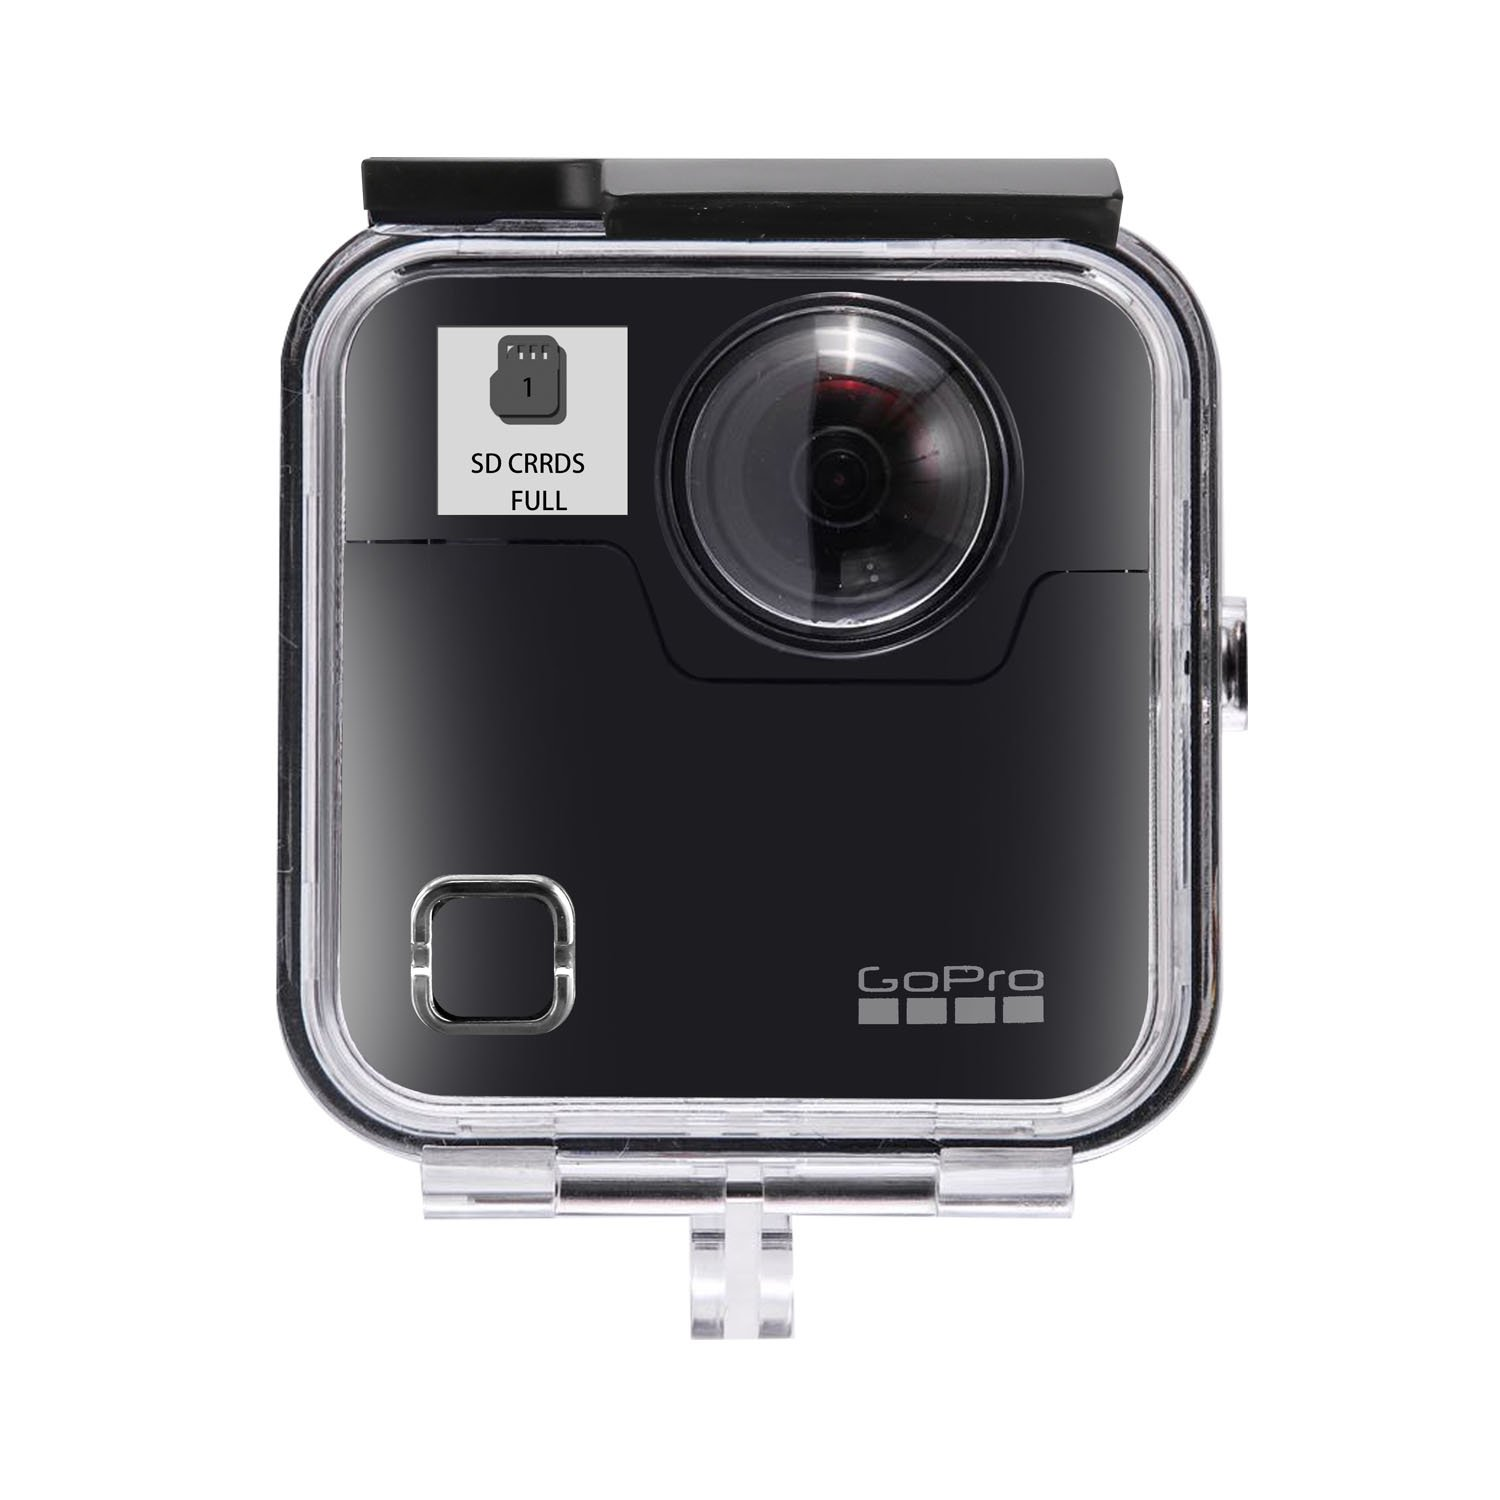 Amazon.com : Waterproof Housing Case for Gopro Fusion ...